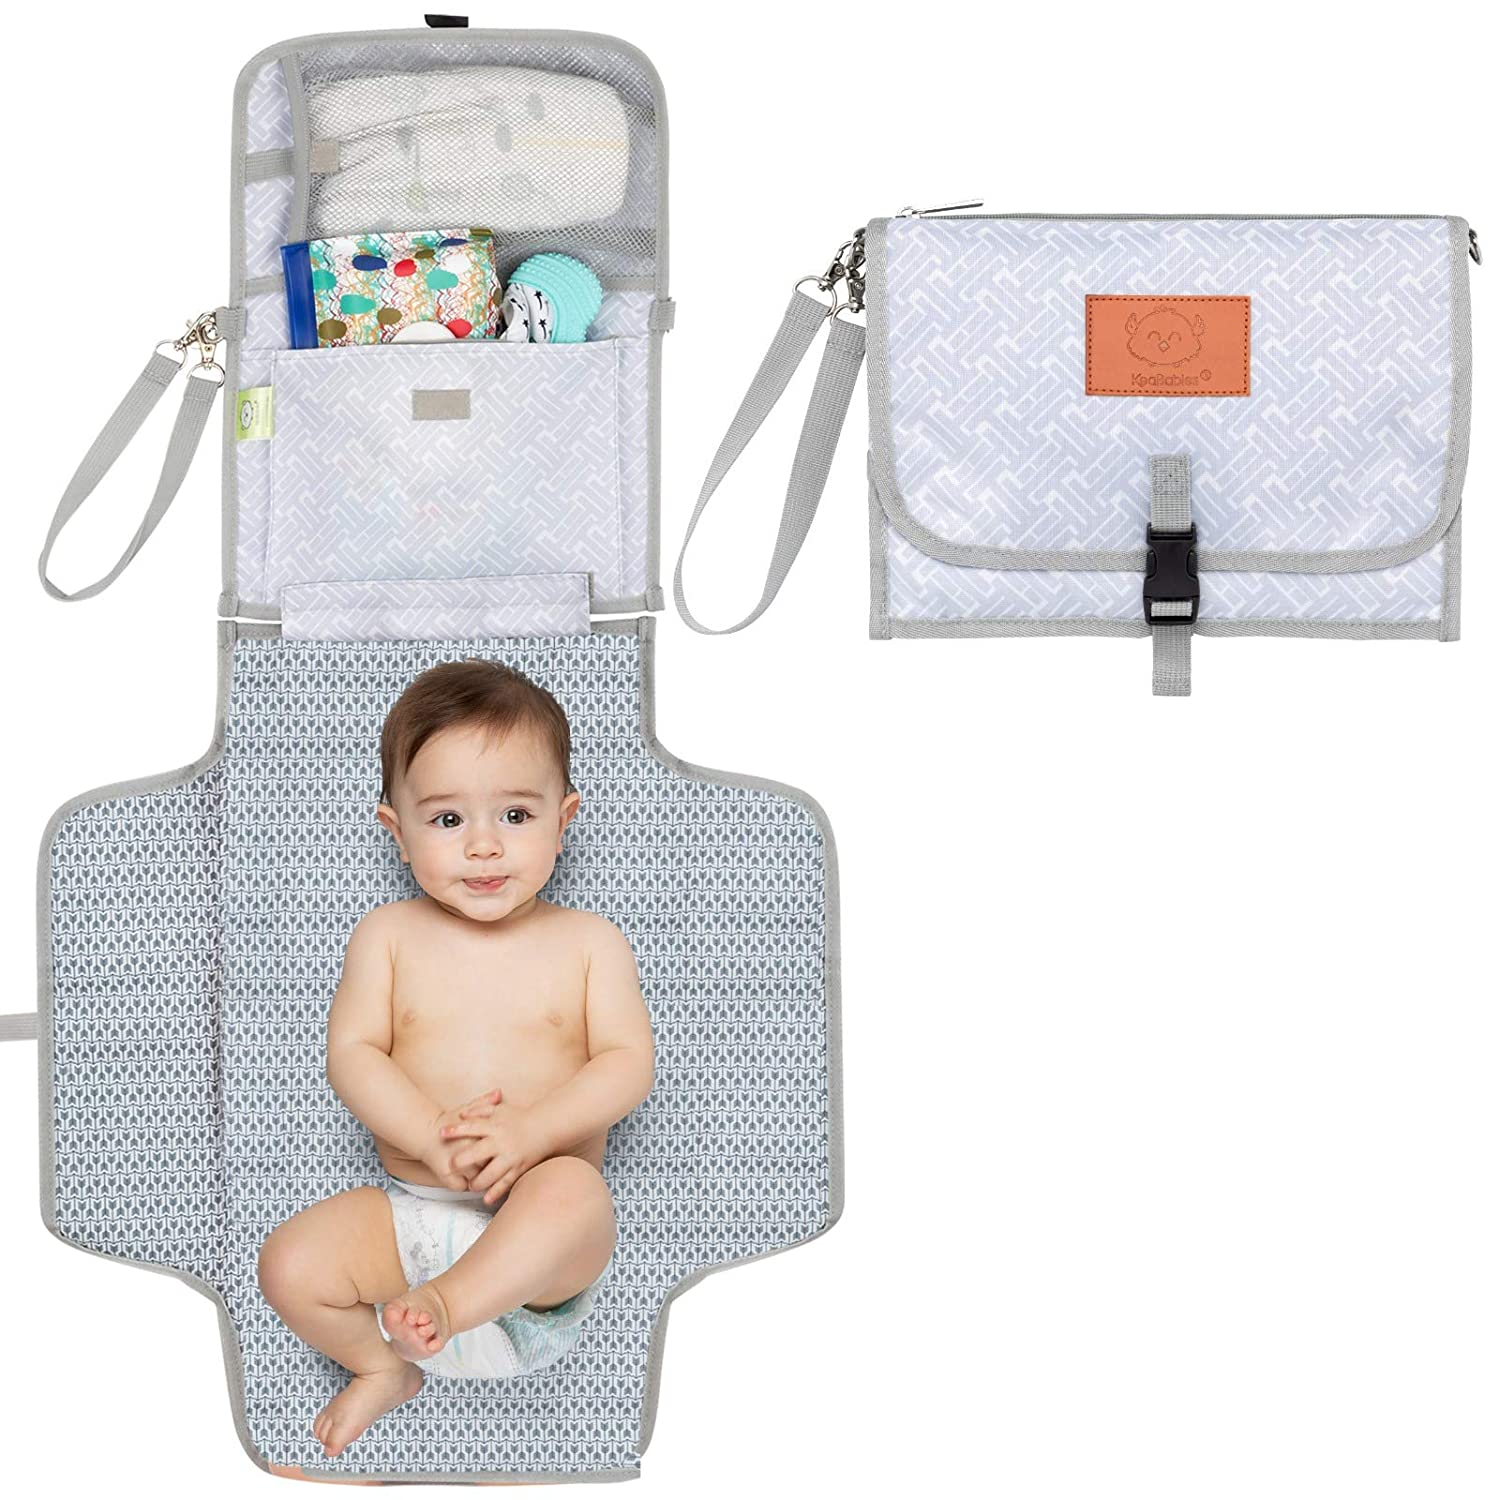 Baby Travel Changing Mat Folding Portable Diaper Wipe Clean Waterproof Pad CB